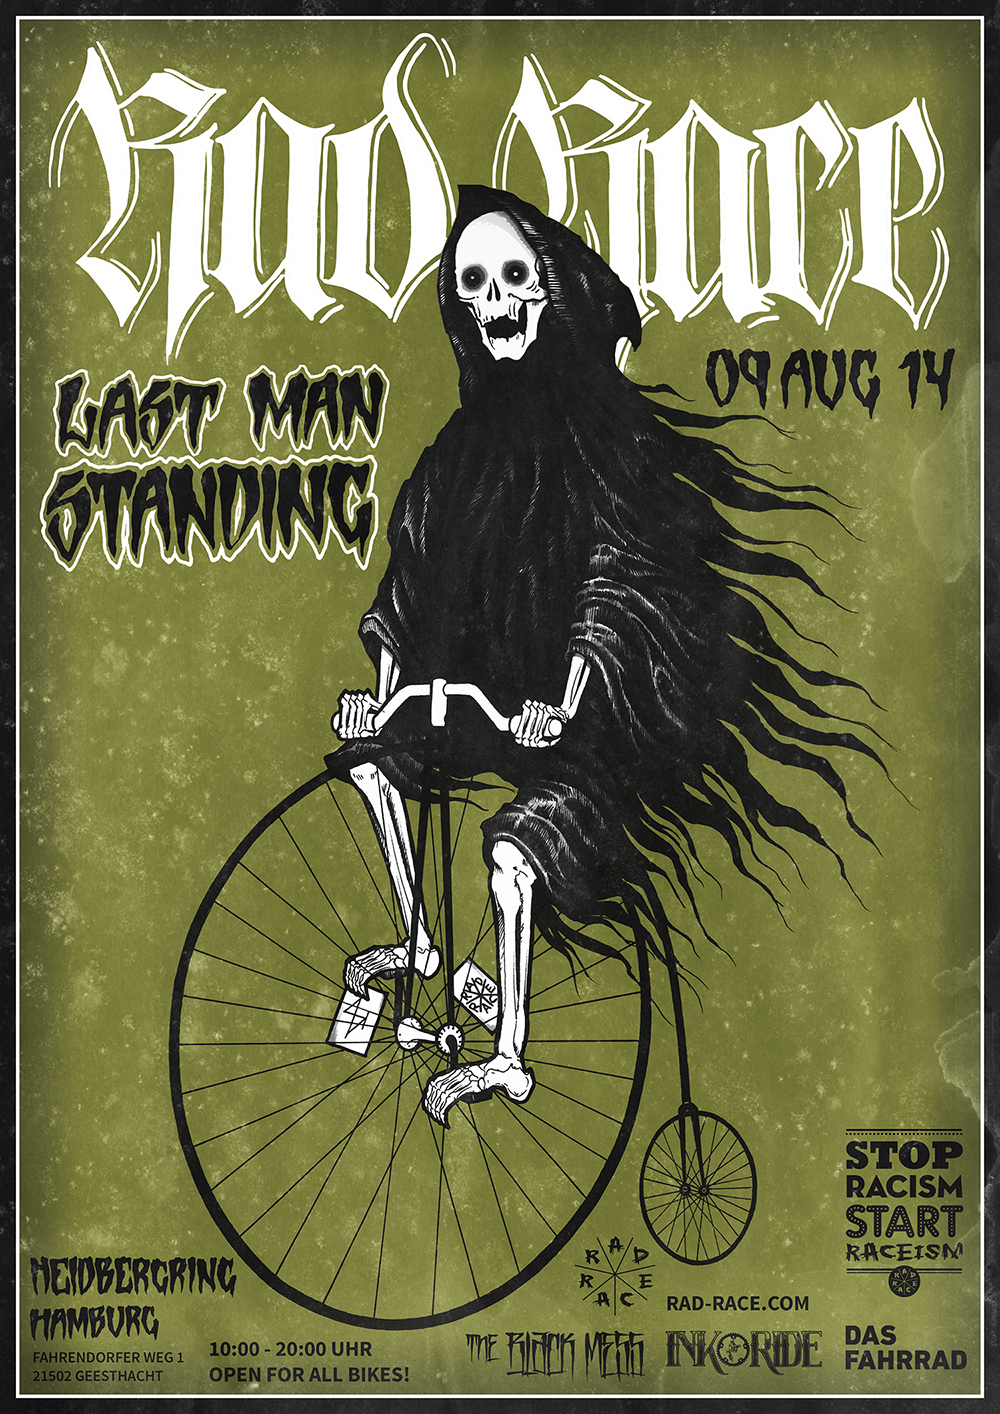 We proudly present & hand drawn by Stefan Holst, represented by  The Black Mess  The official poster for the RAD RACE Last Man Standing, Hamburg – August 9th 2014.  http://www.theblackmess.com/stefanholst